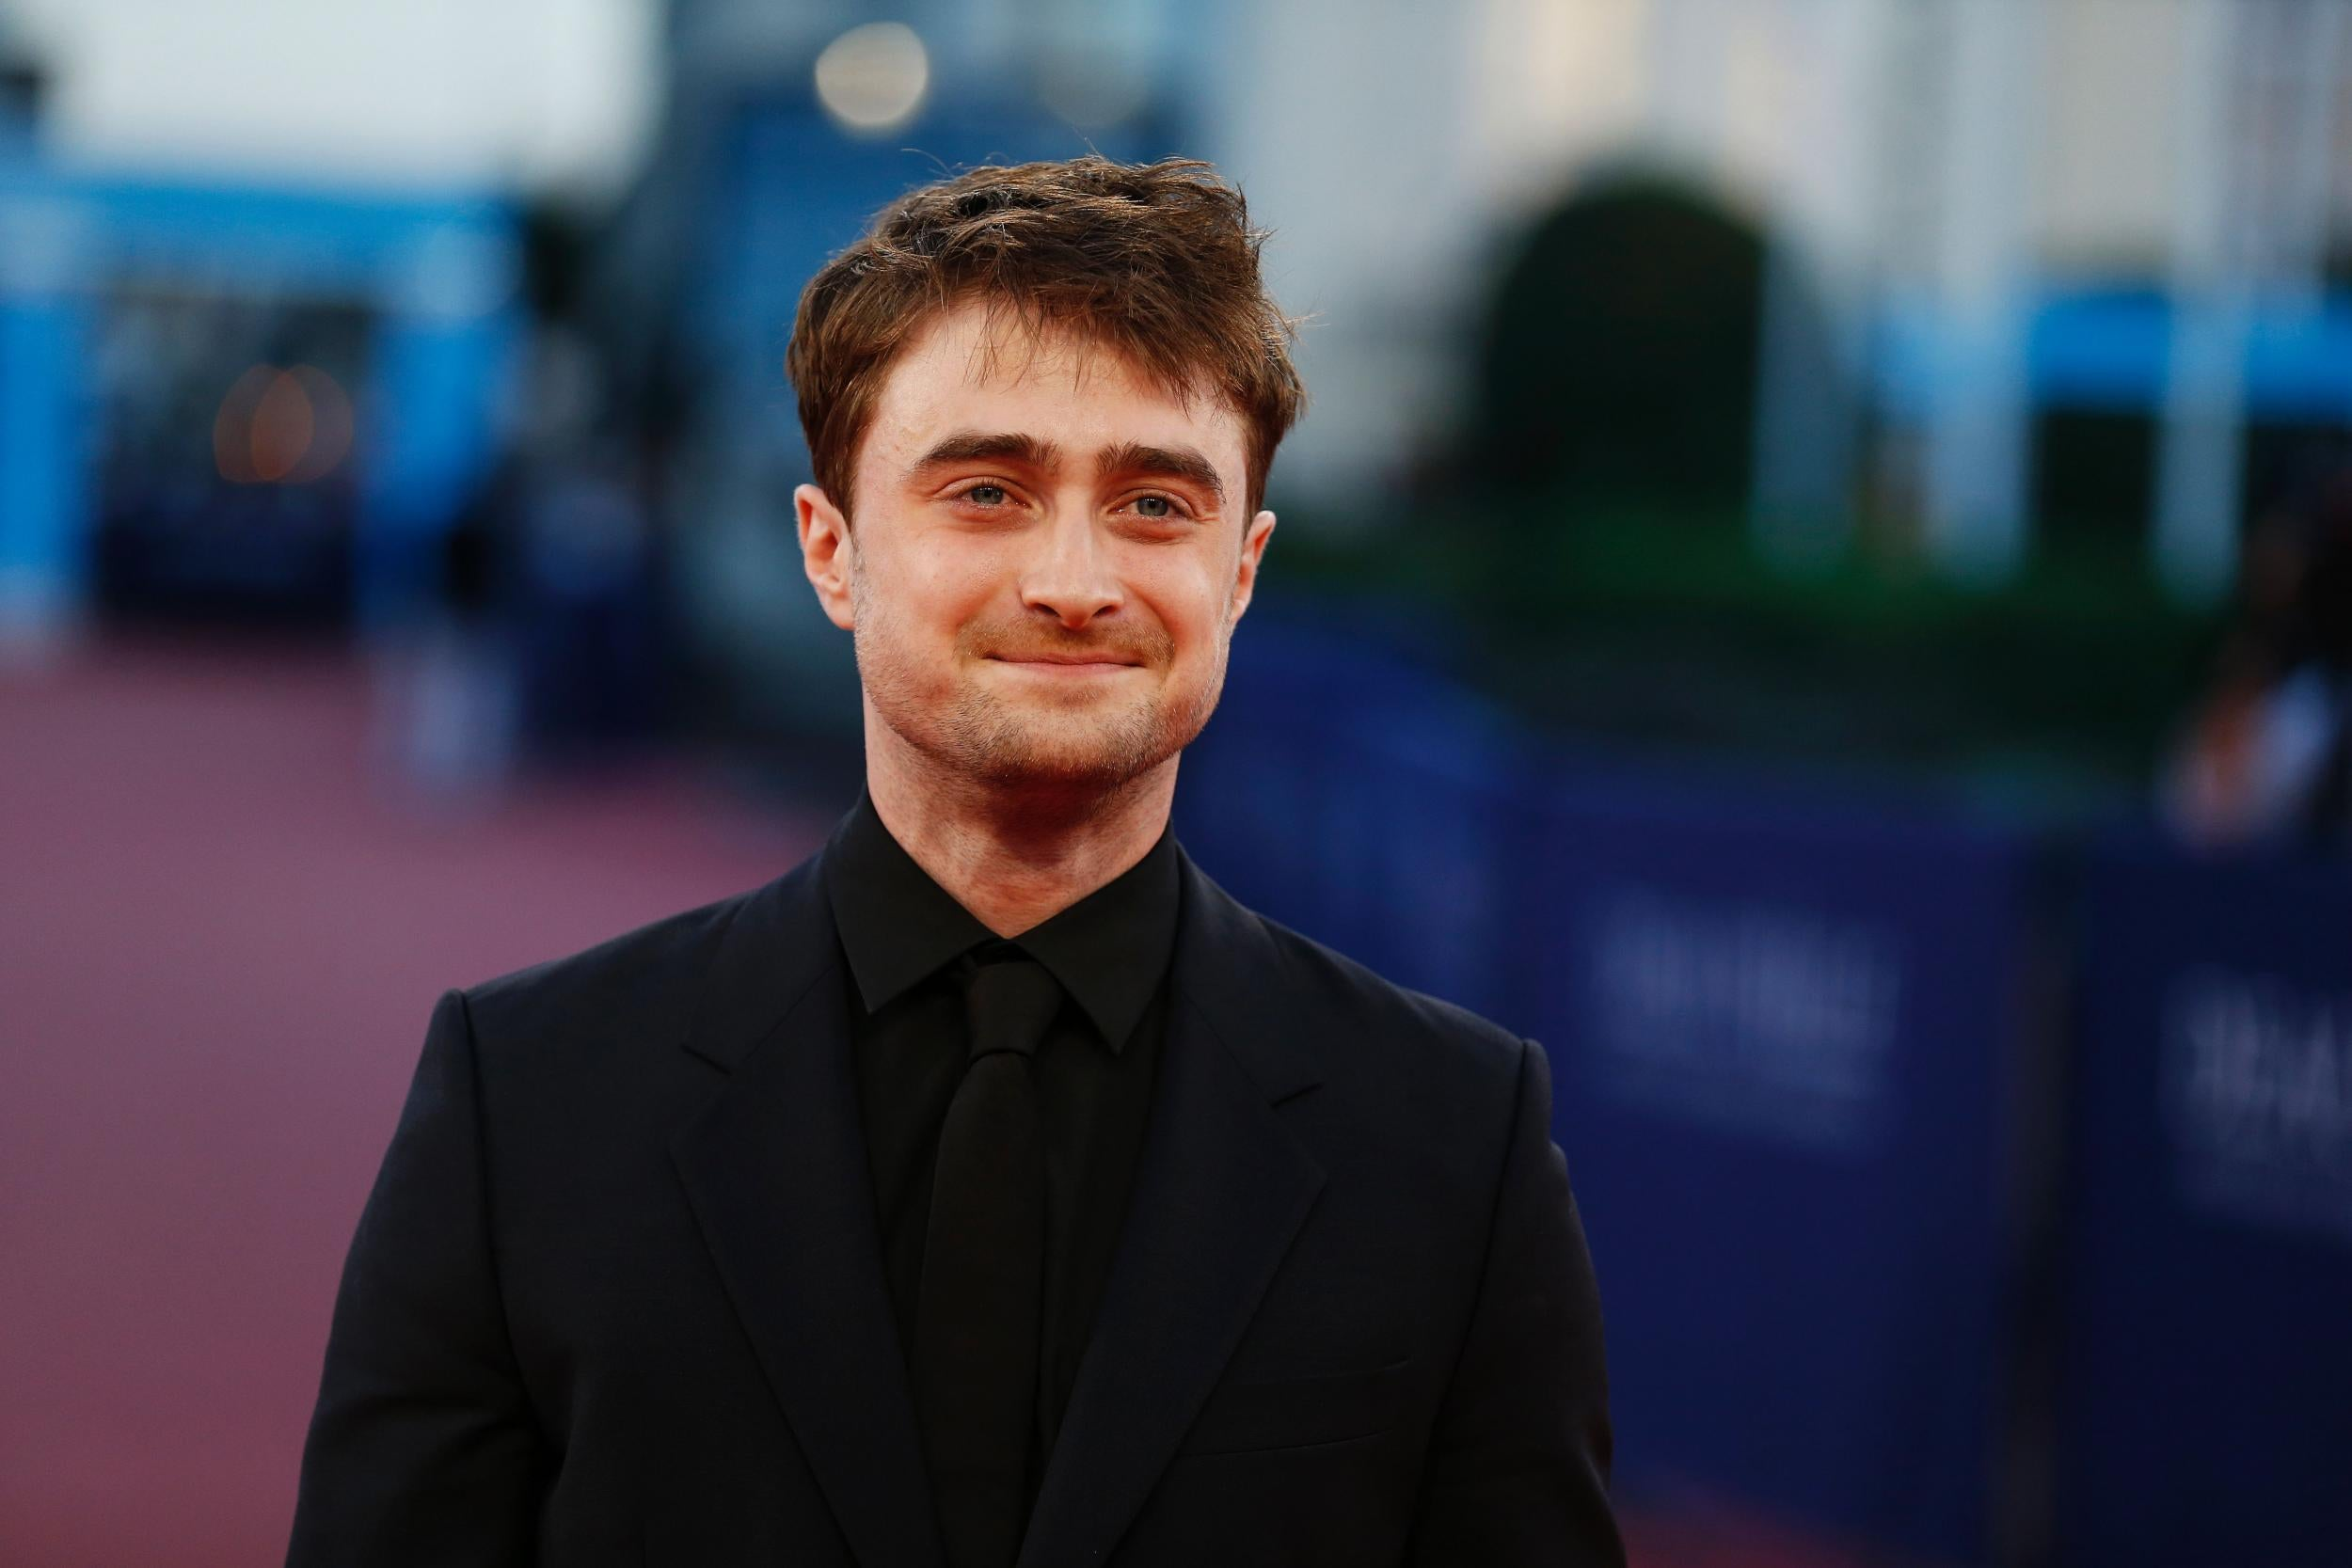 Daniel Radcliffe weighs in on Johnny Depp casting in Fantastic Beasts